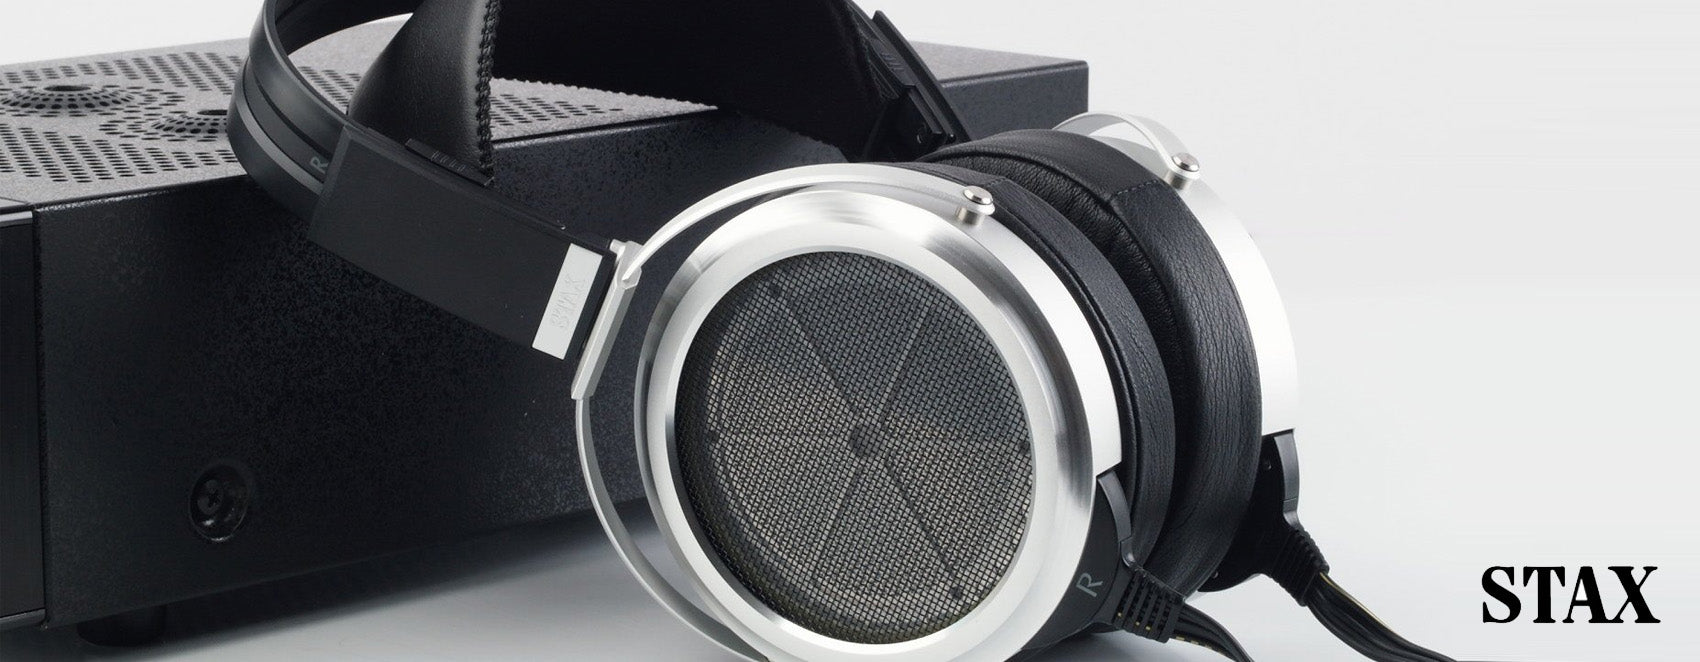 STAX headphones earspeakers